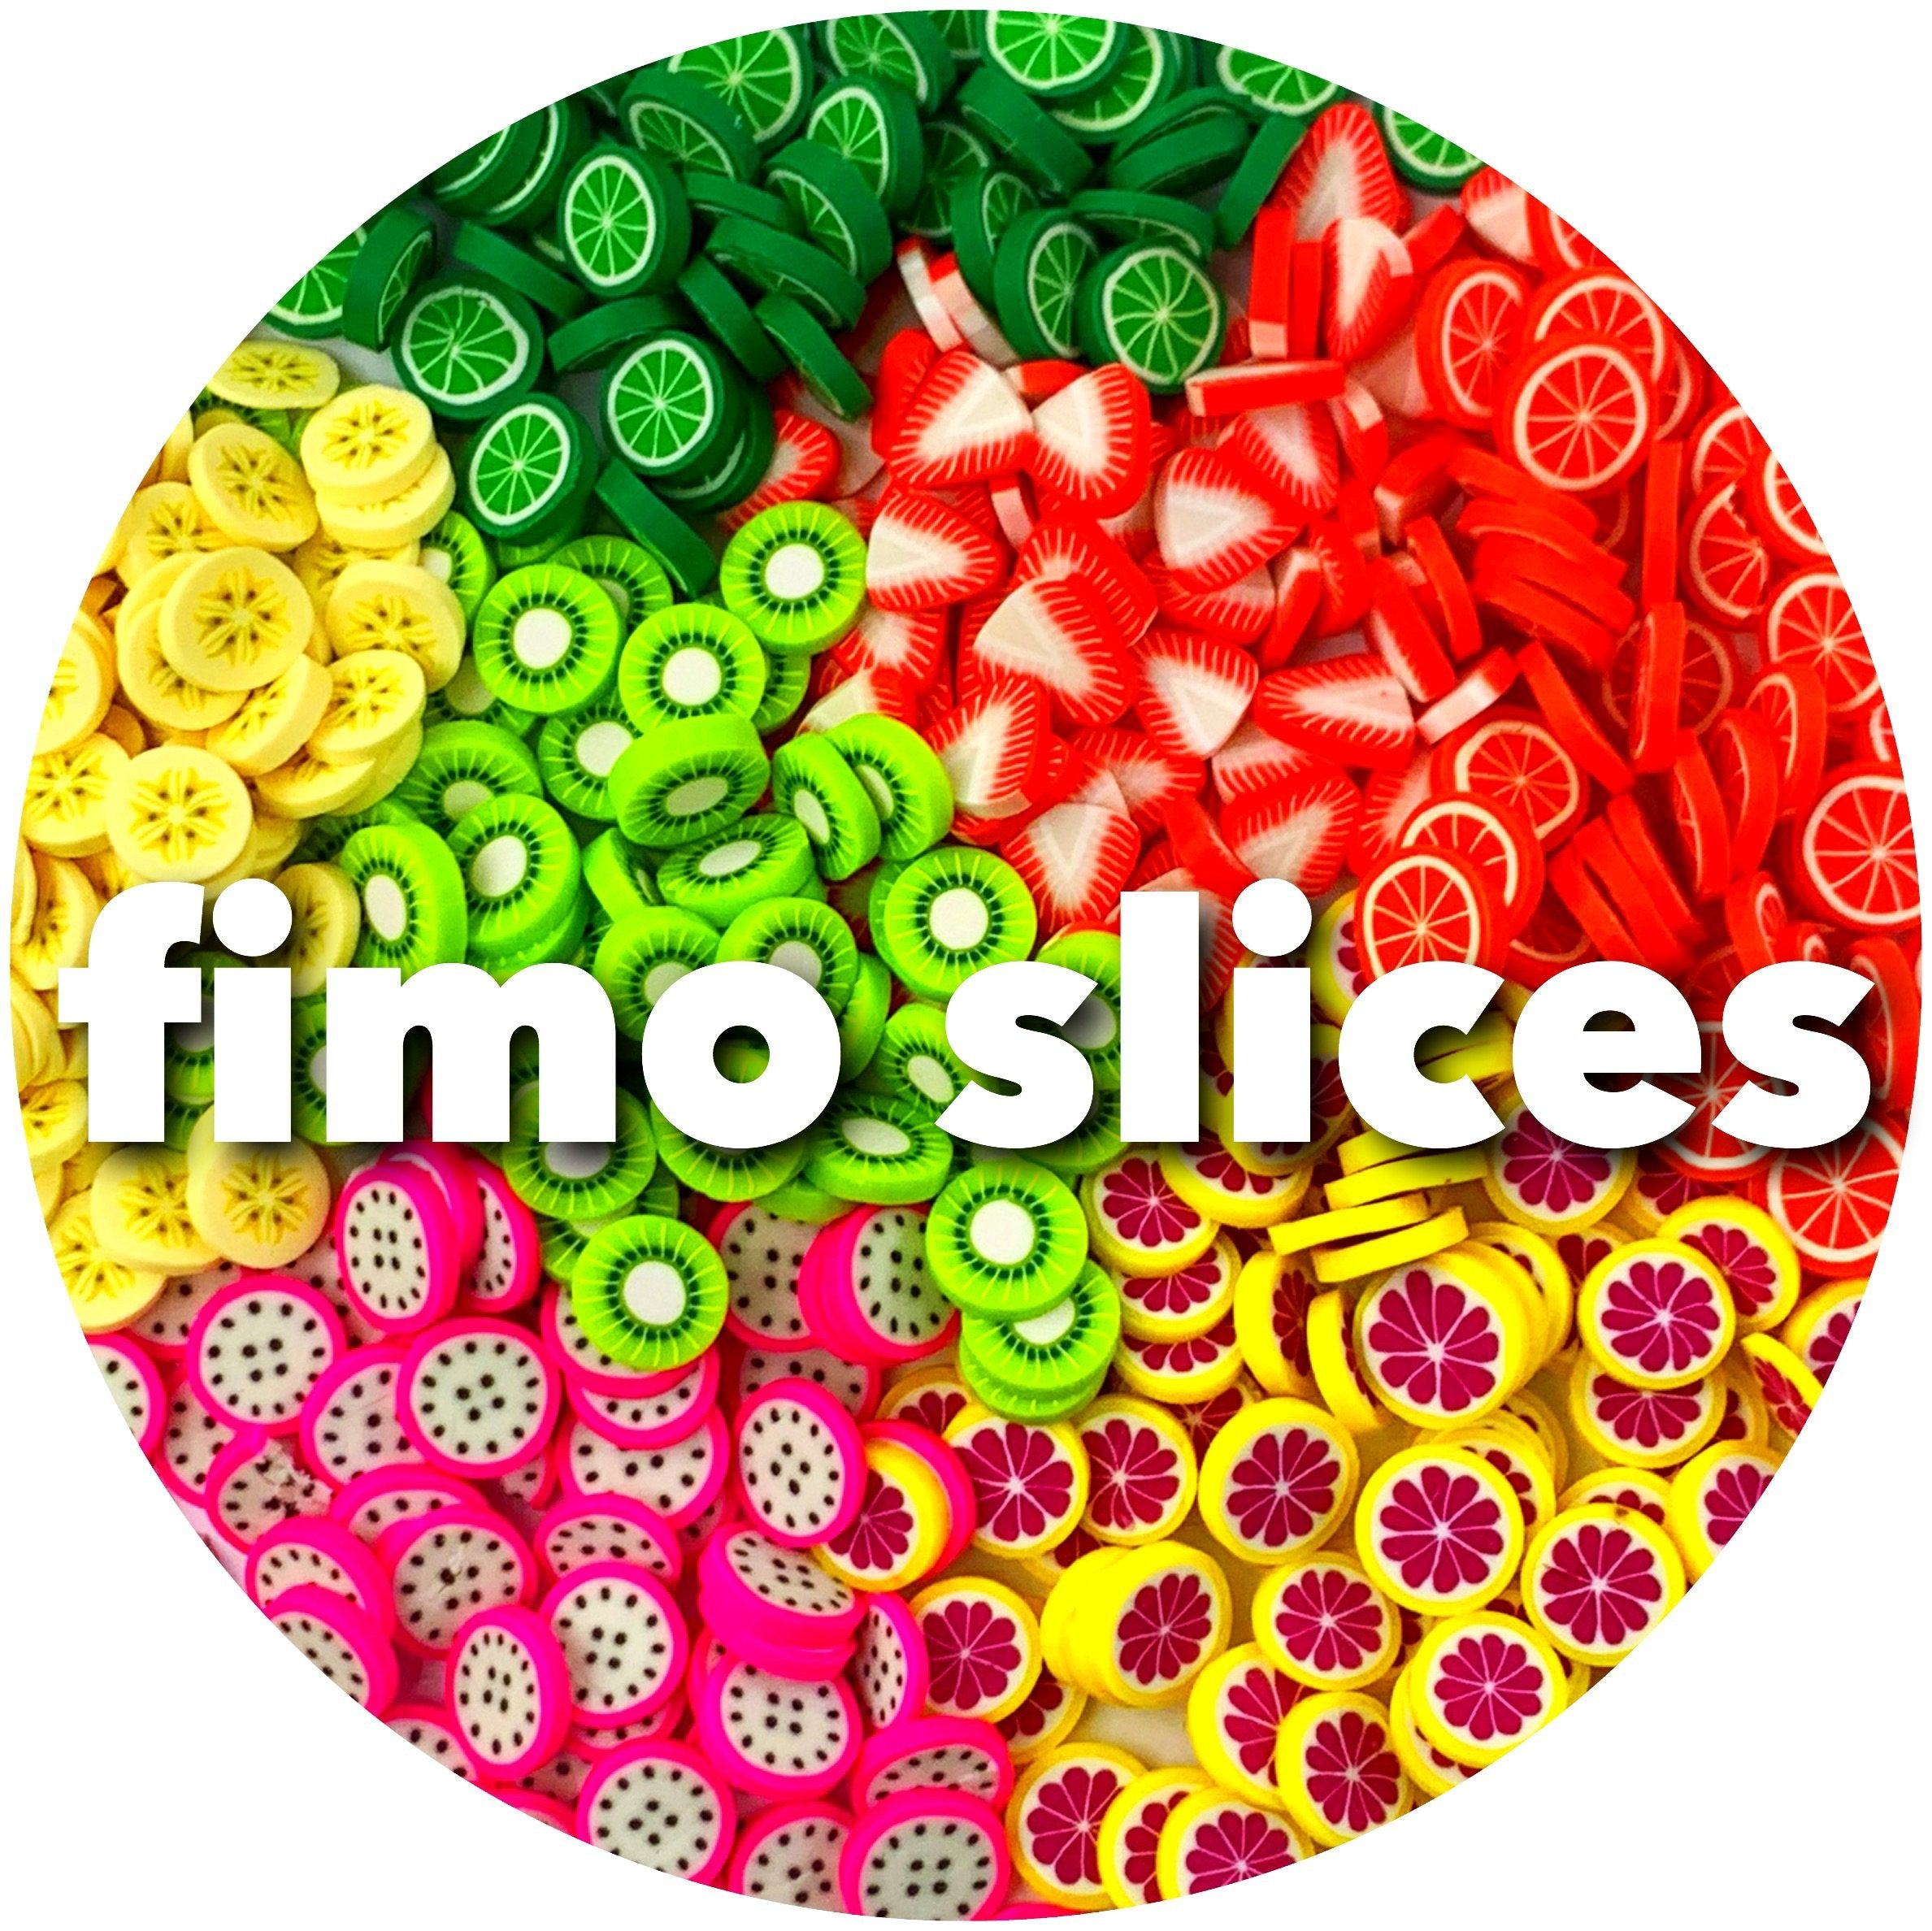 Fimos - Shop Slime Supplies - Dope Slimes